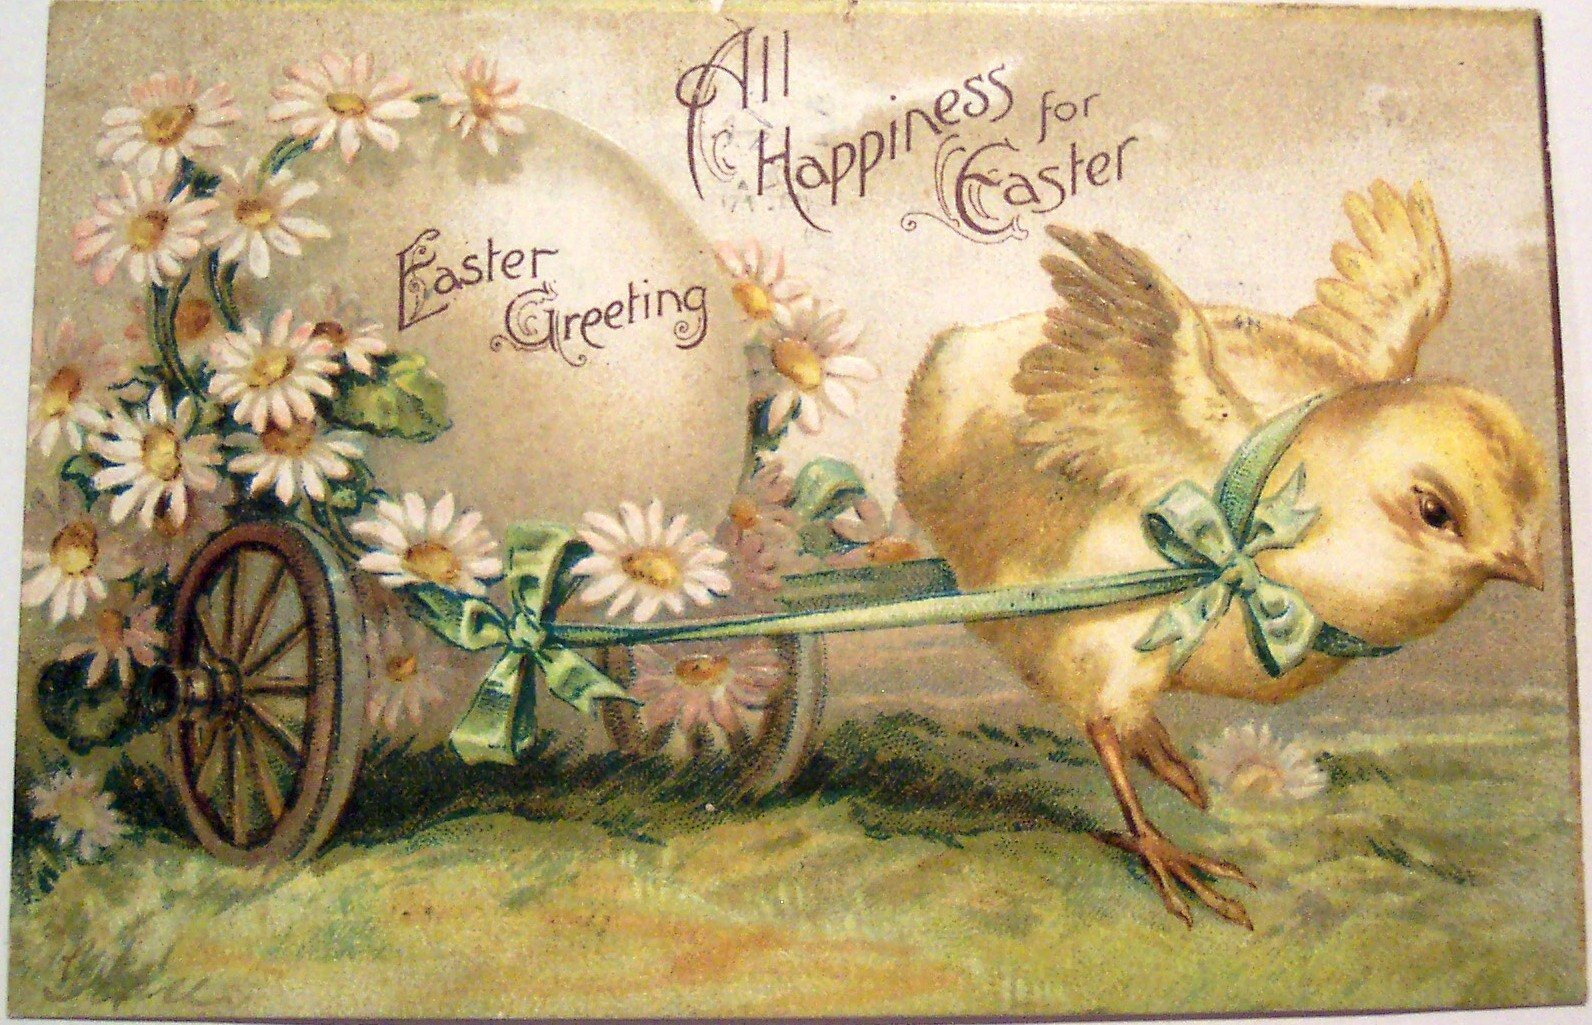 Easter Cards Wallpapers High Quality Download 1592x1025